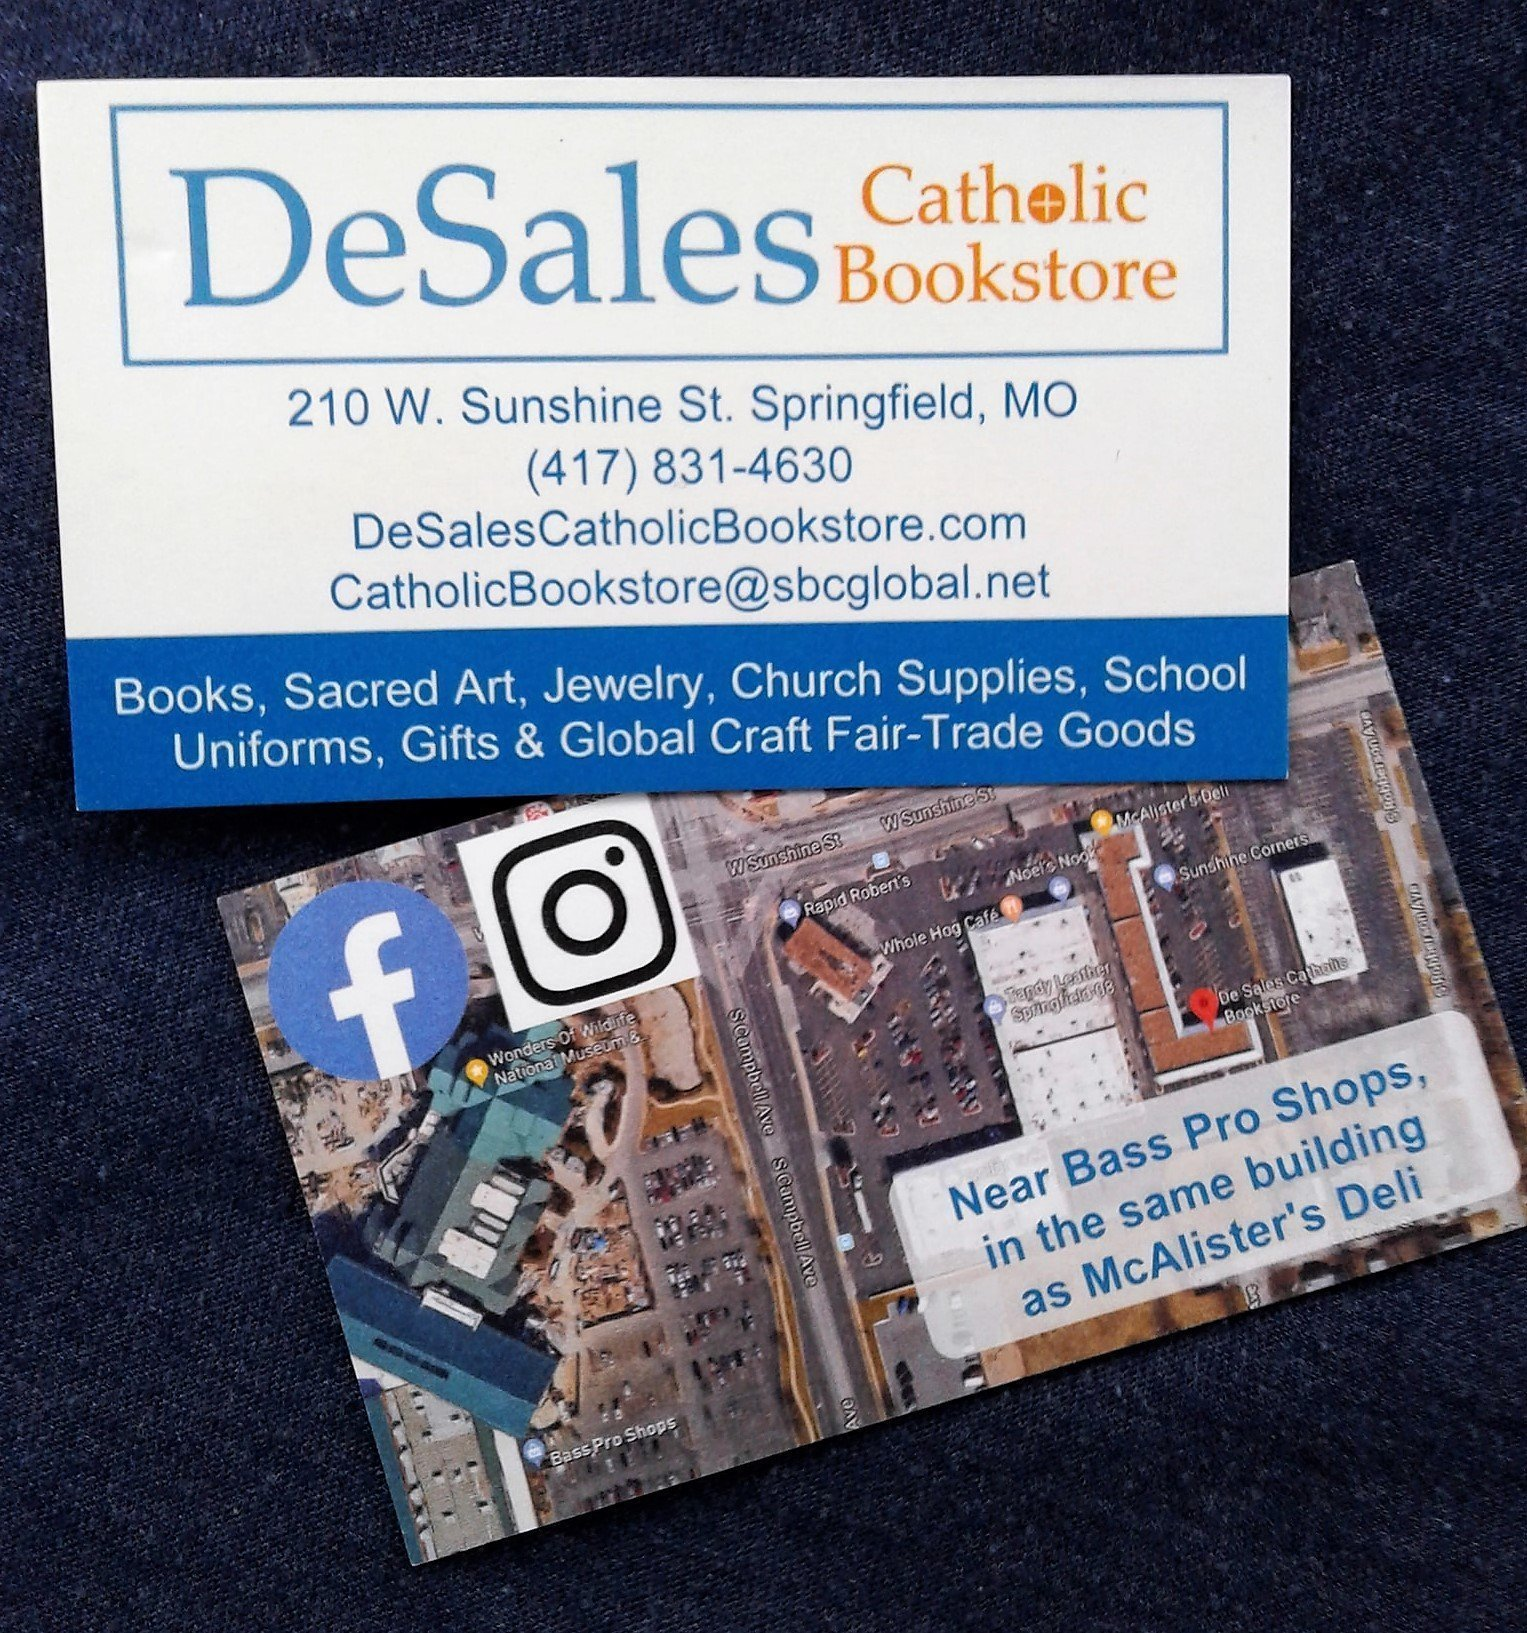 A sample of business card design. The business contact info is on the front and a map to the store is on the back.